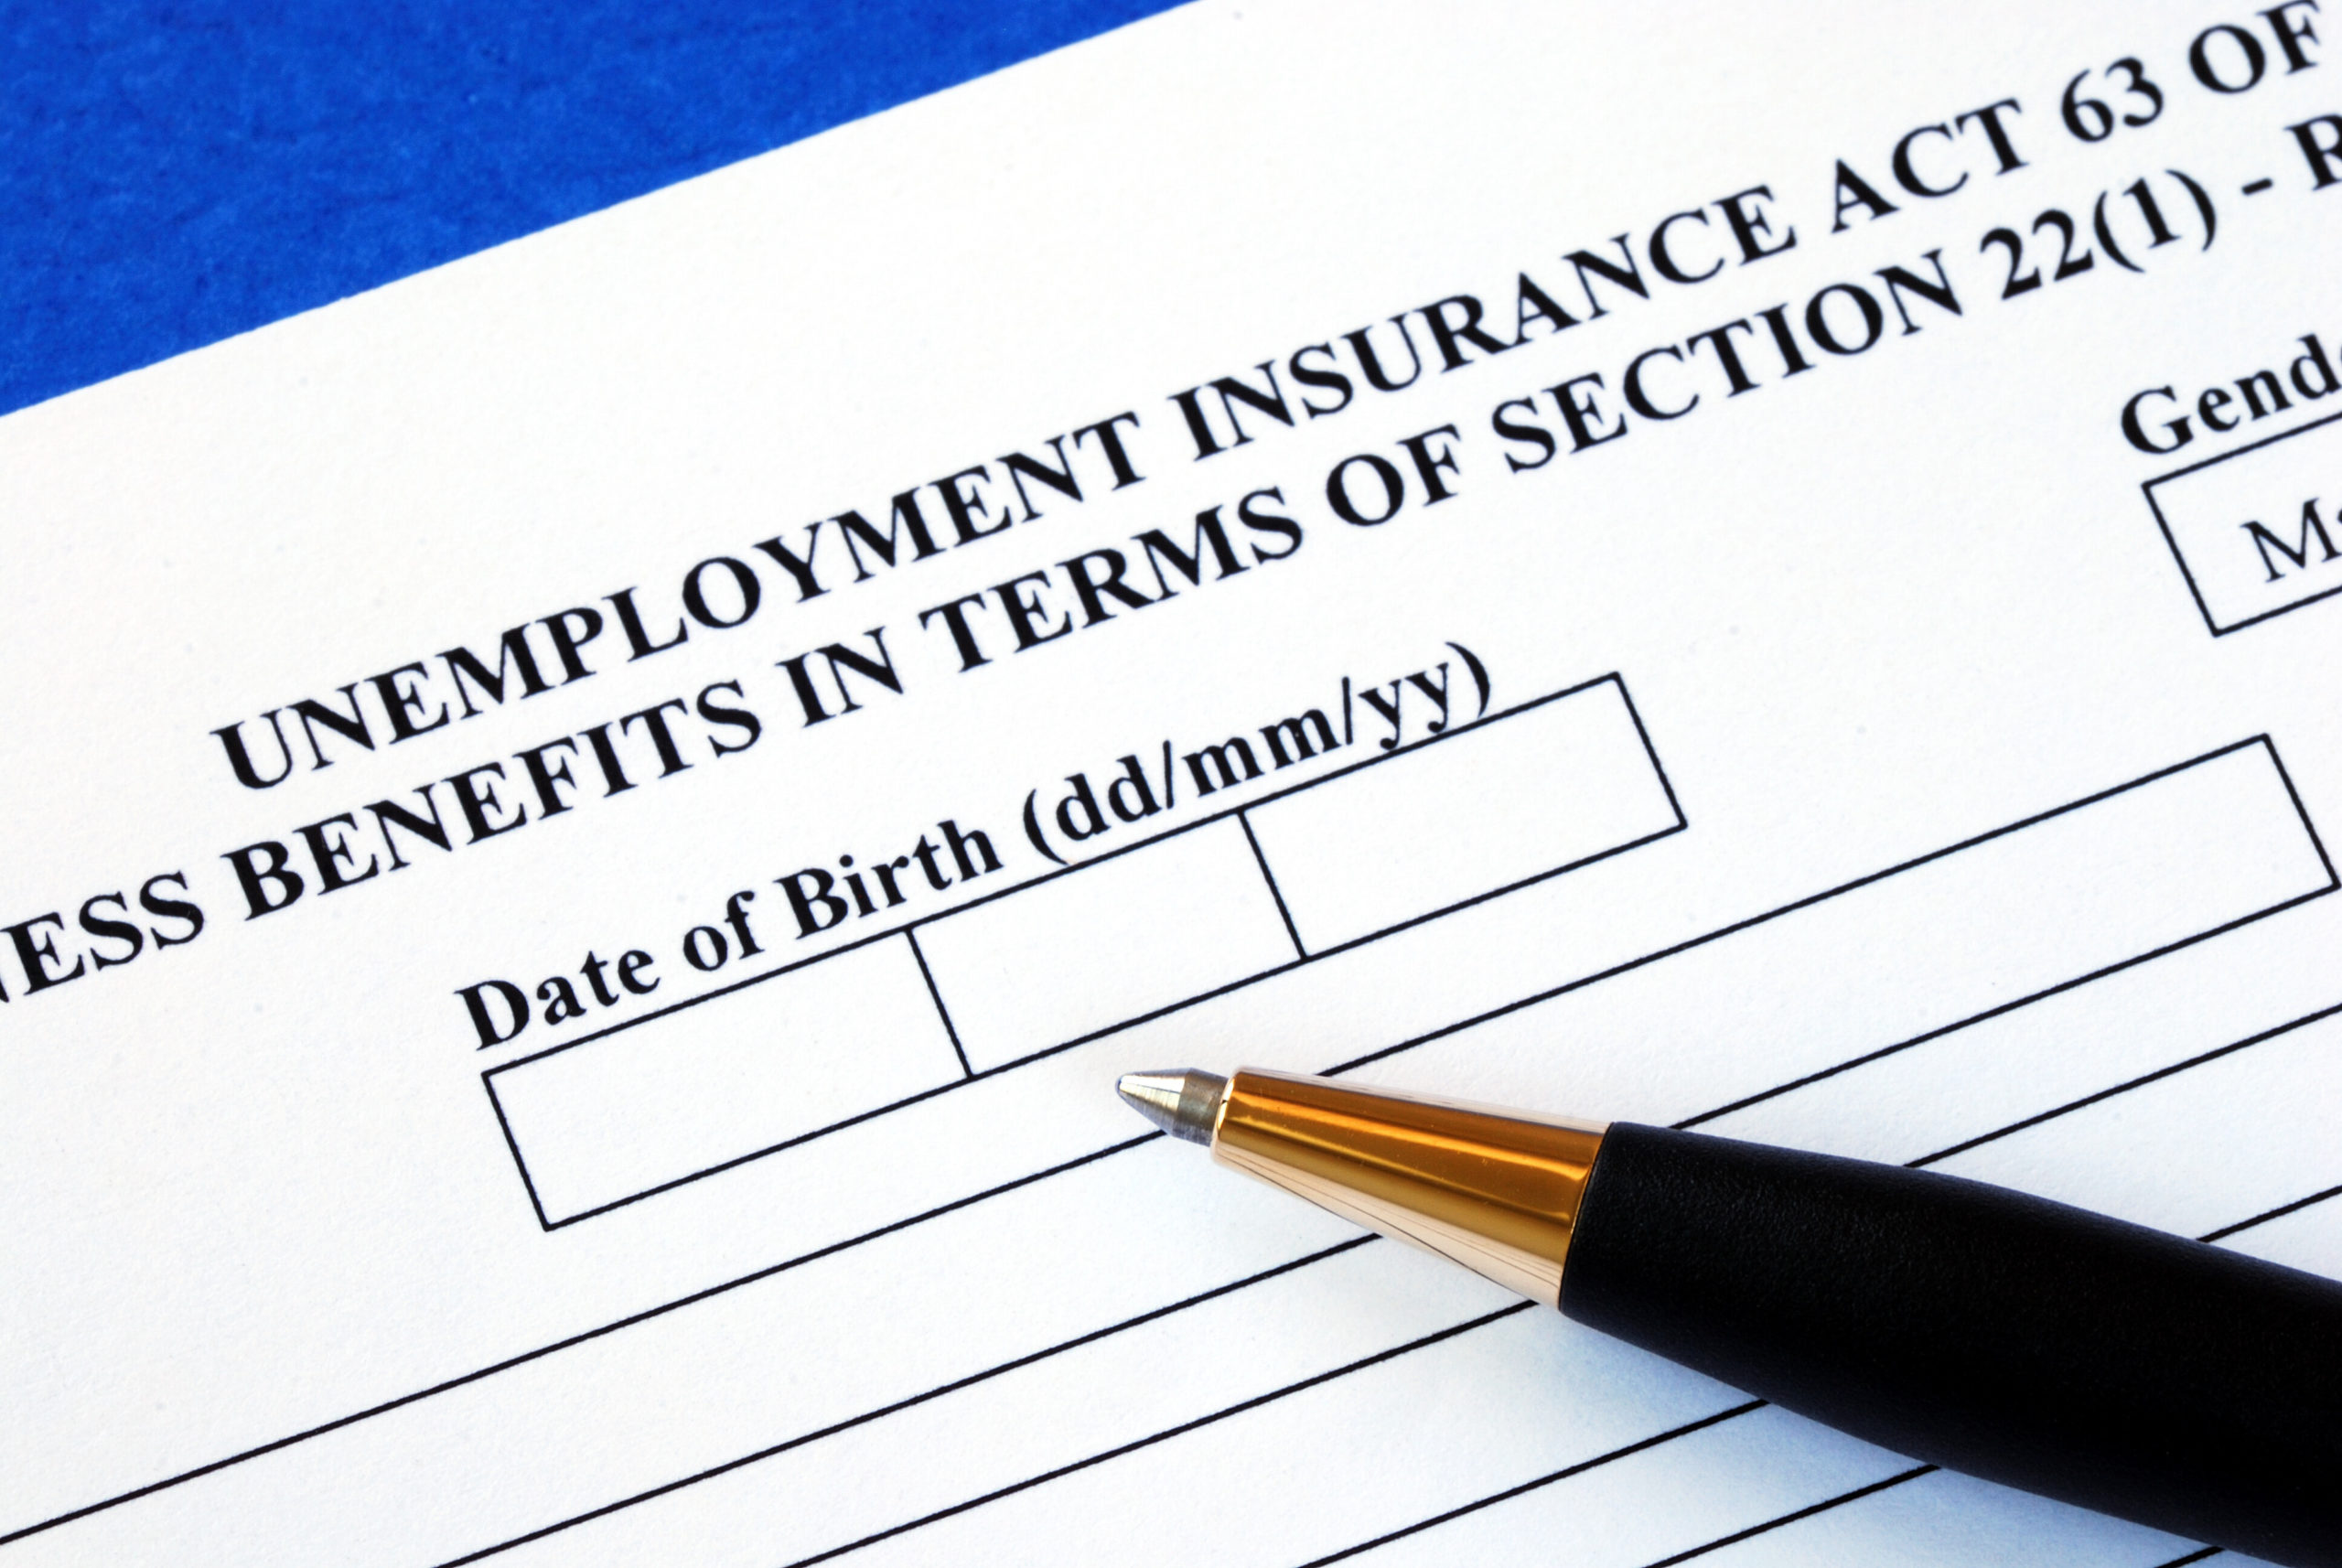 Connecticut Department of Labor estimates 130,000 overpayments of unemployment compensation